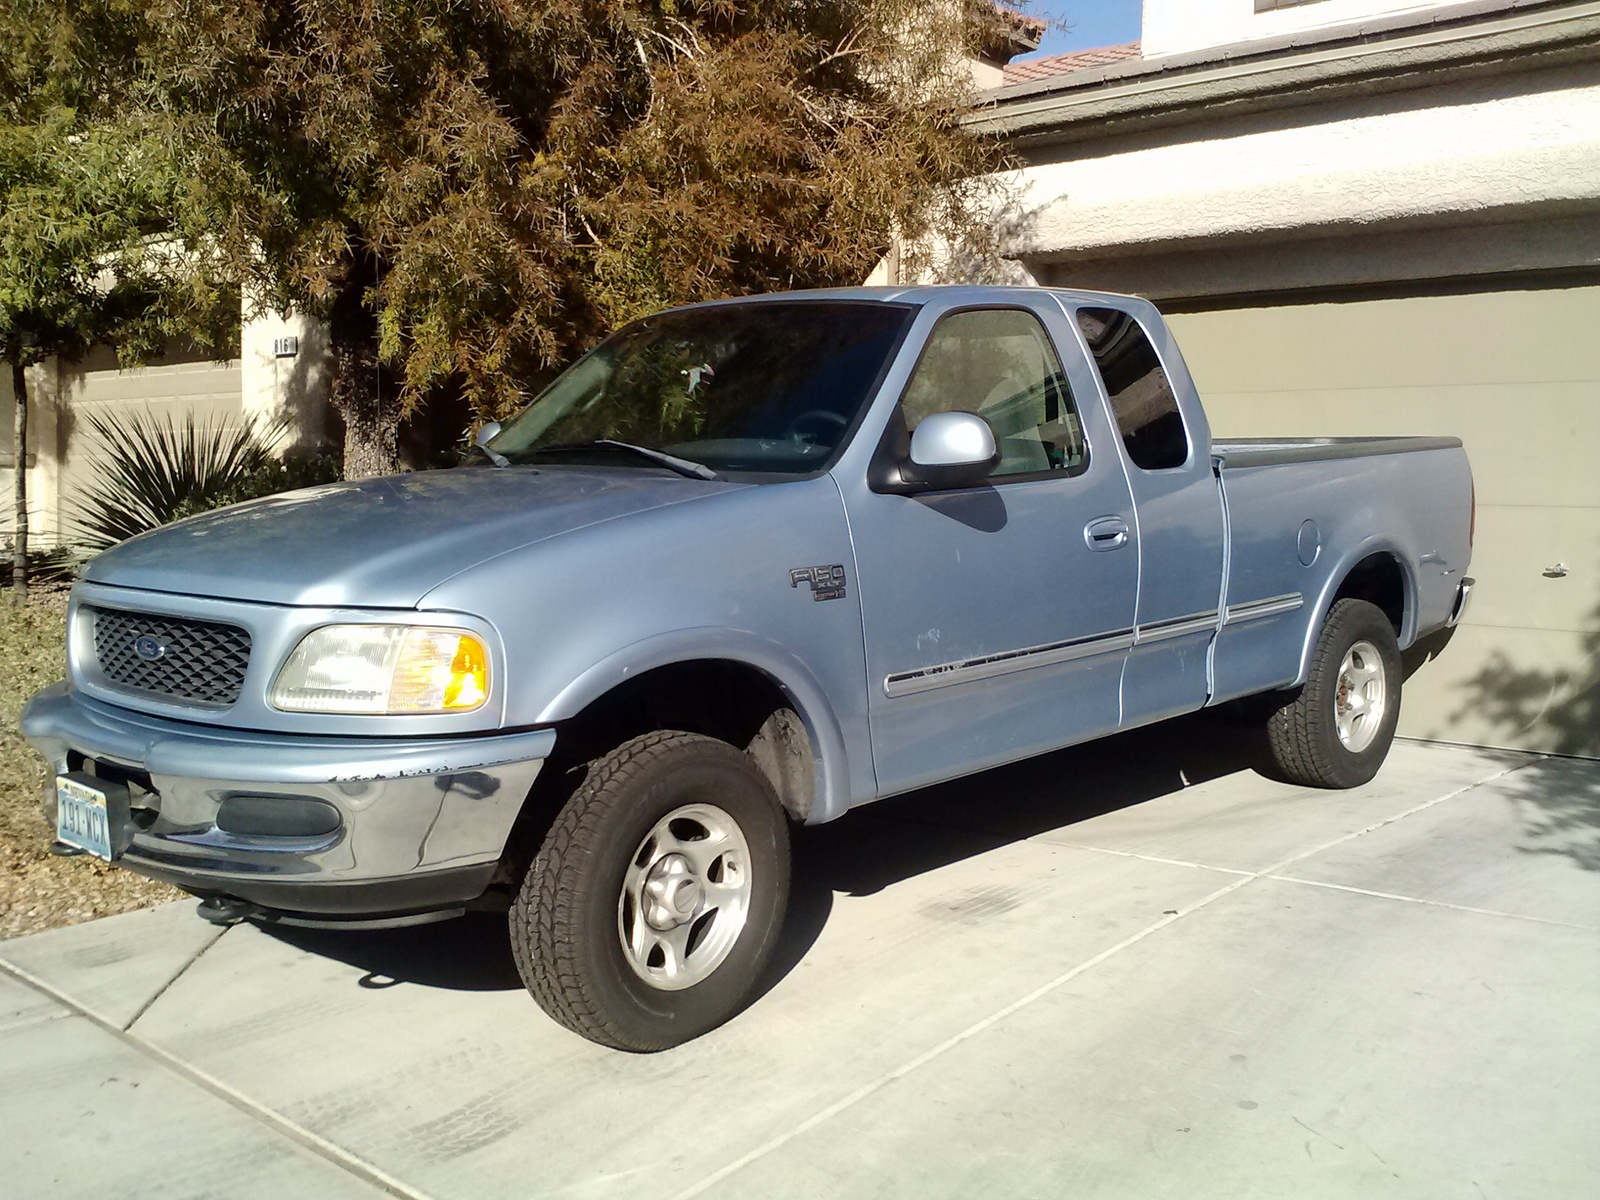 1998 Ford F-150 XLT 4WD Extended Cab LB, Picture of 1998 Ford F-150 3 Dr XLT 4WD Extended Cab LB, exterior